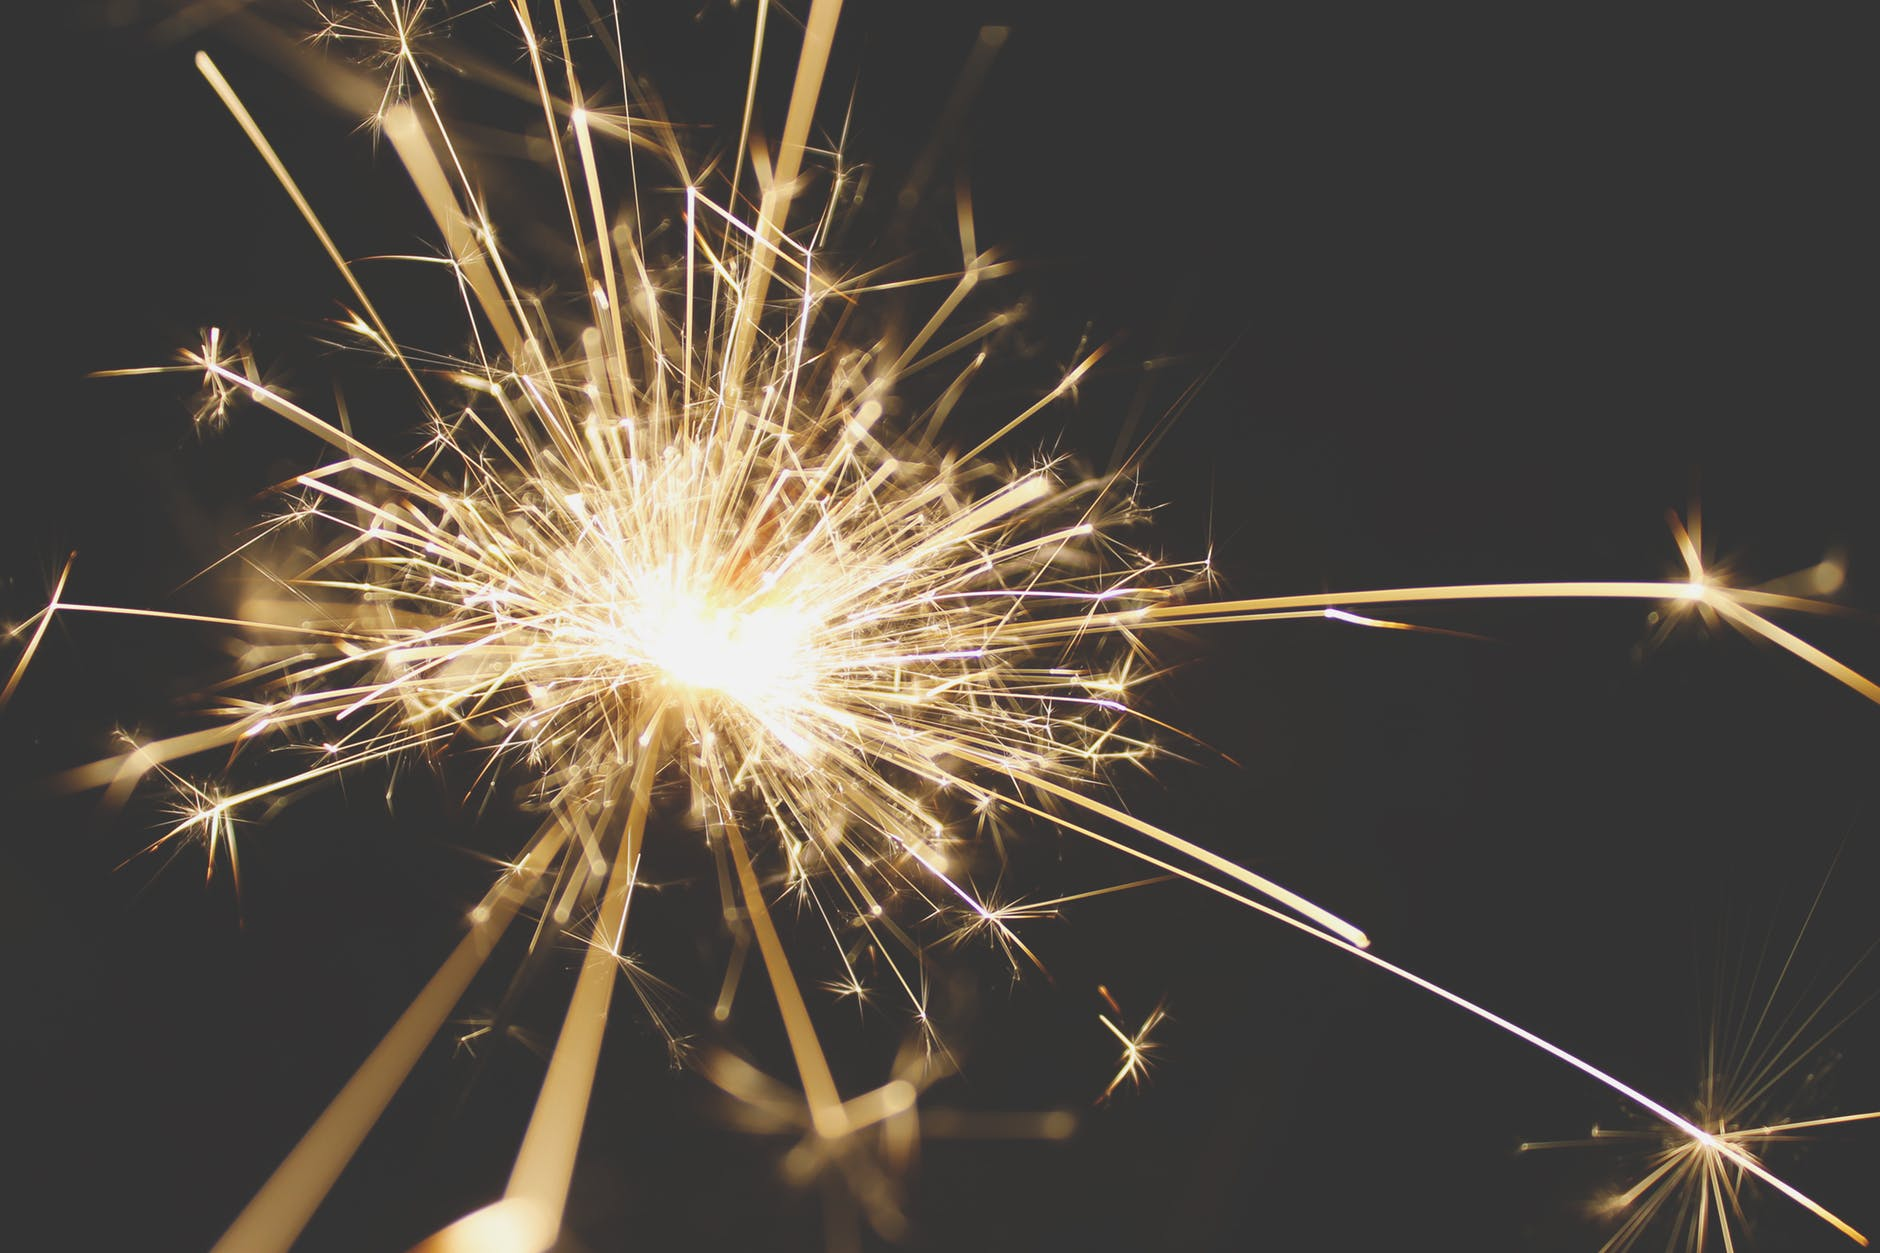 A golden sparkler glowing and streaming in the night air